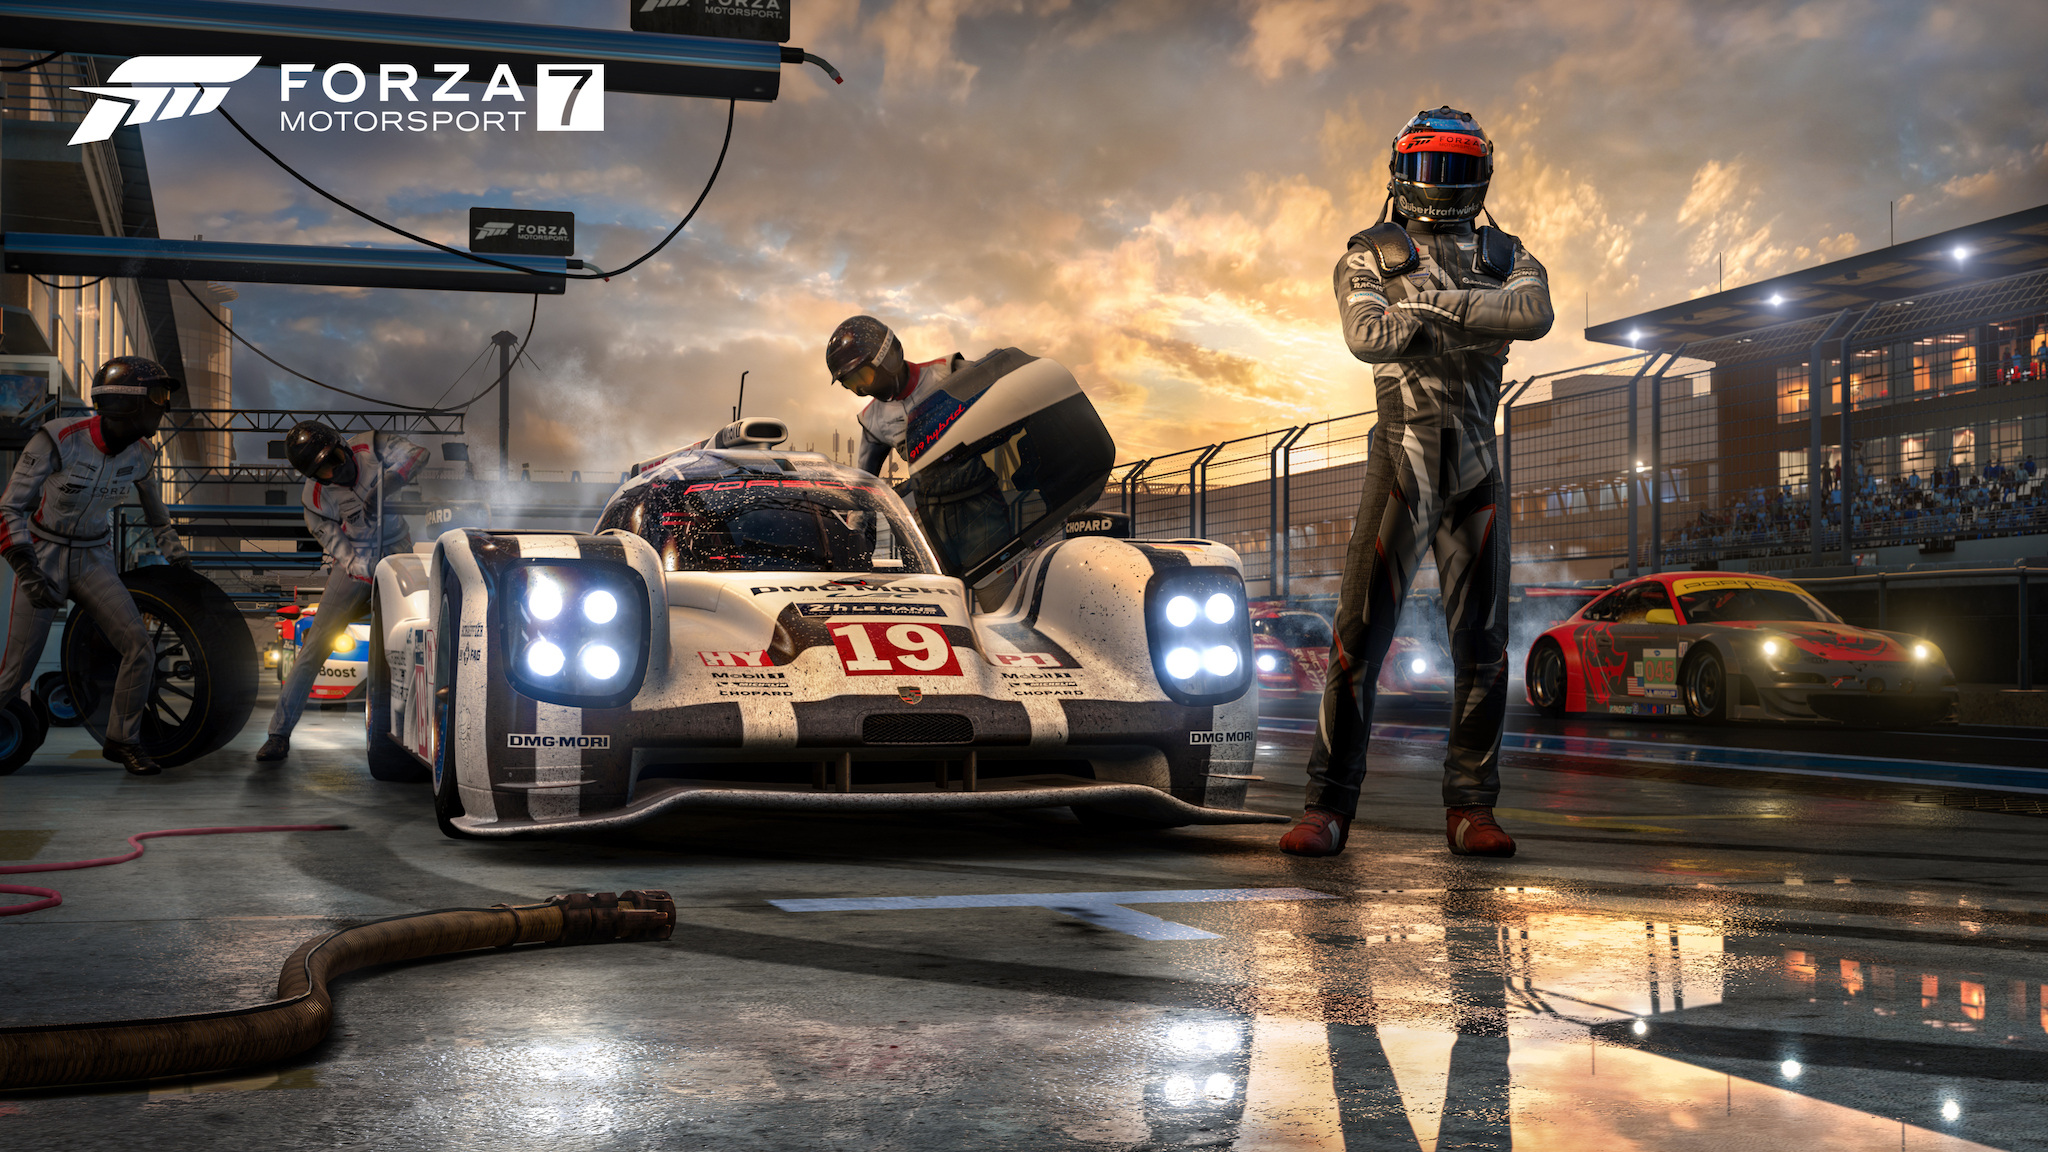 Forza Motorsport 7 reviewed: Racing fun for everyone | Ars Technica